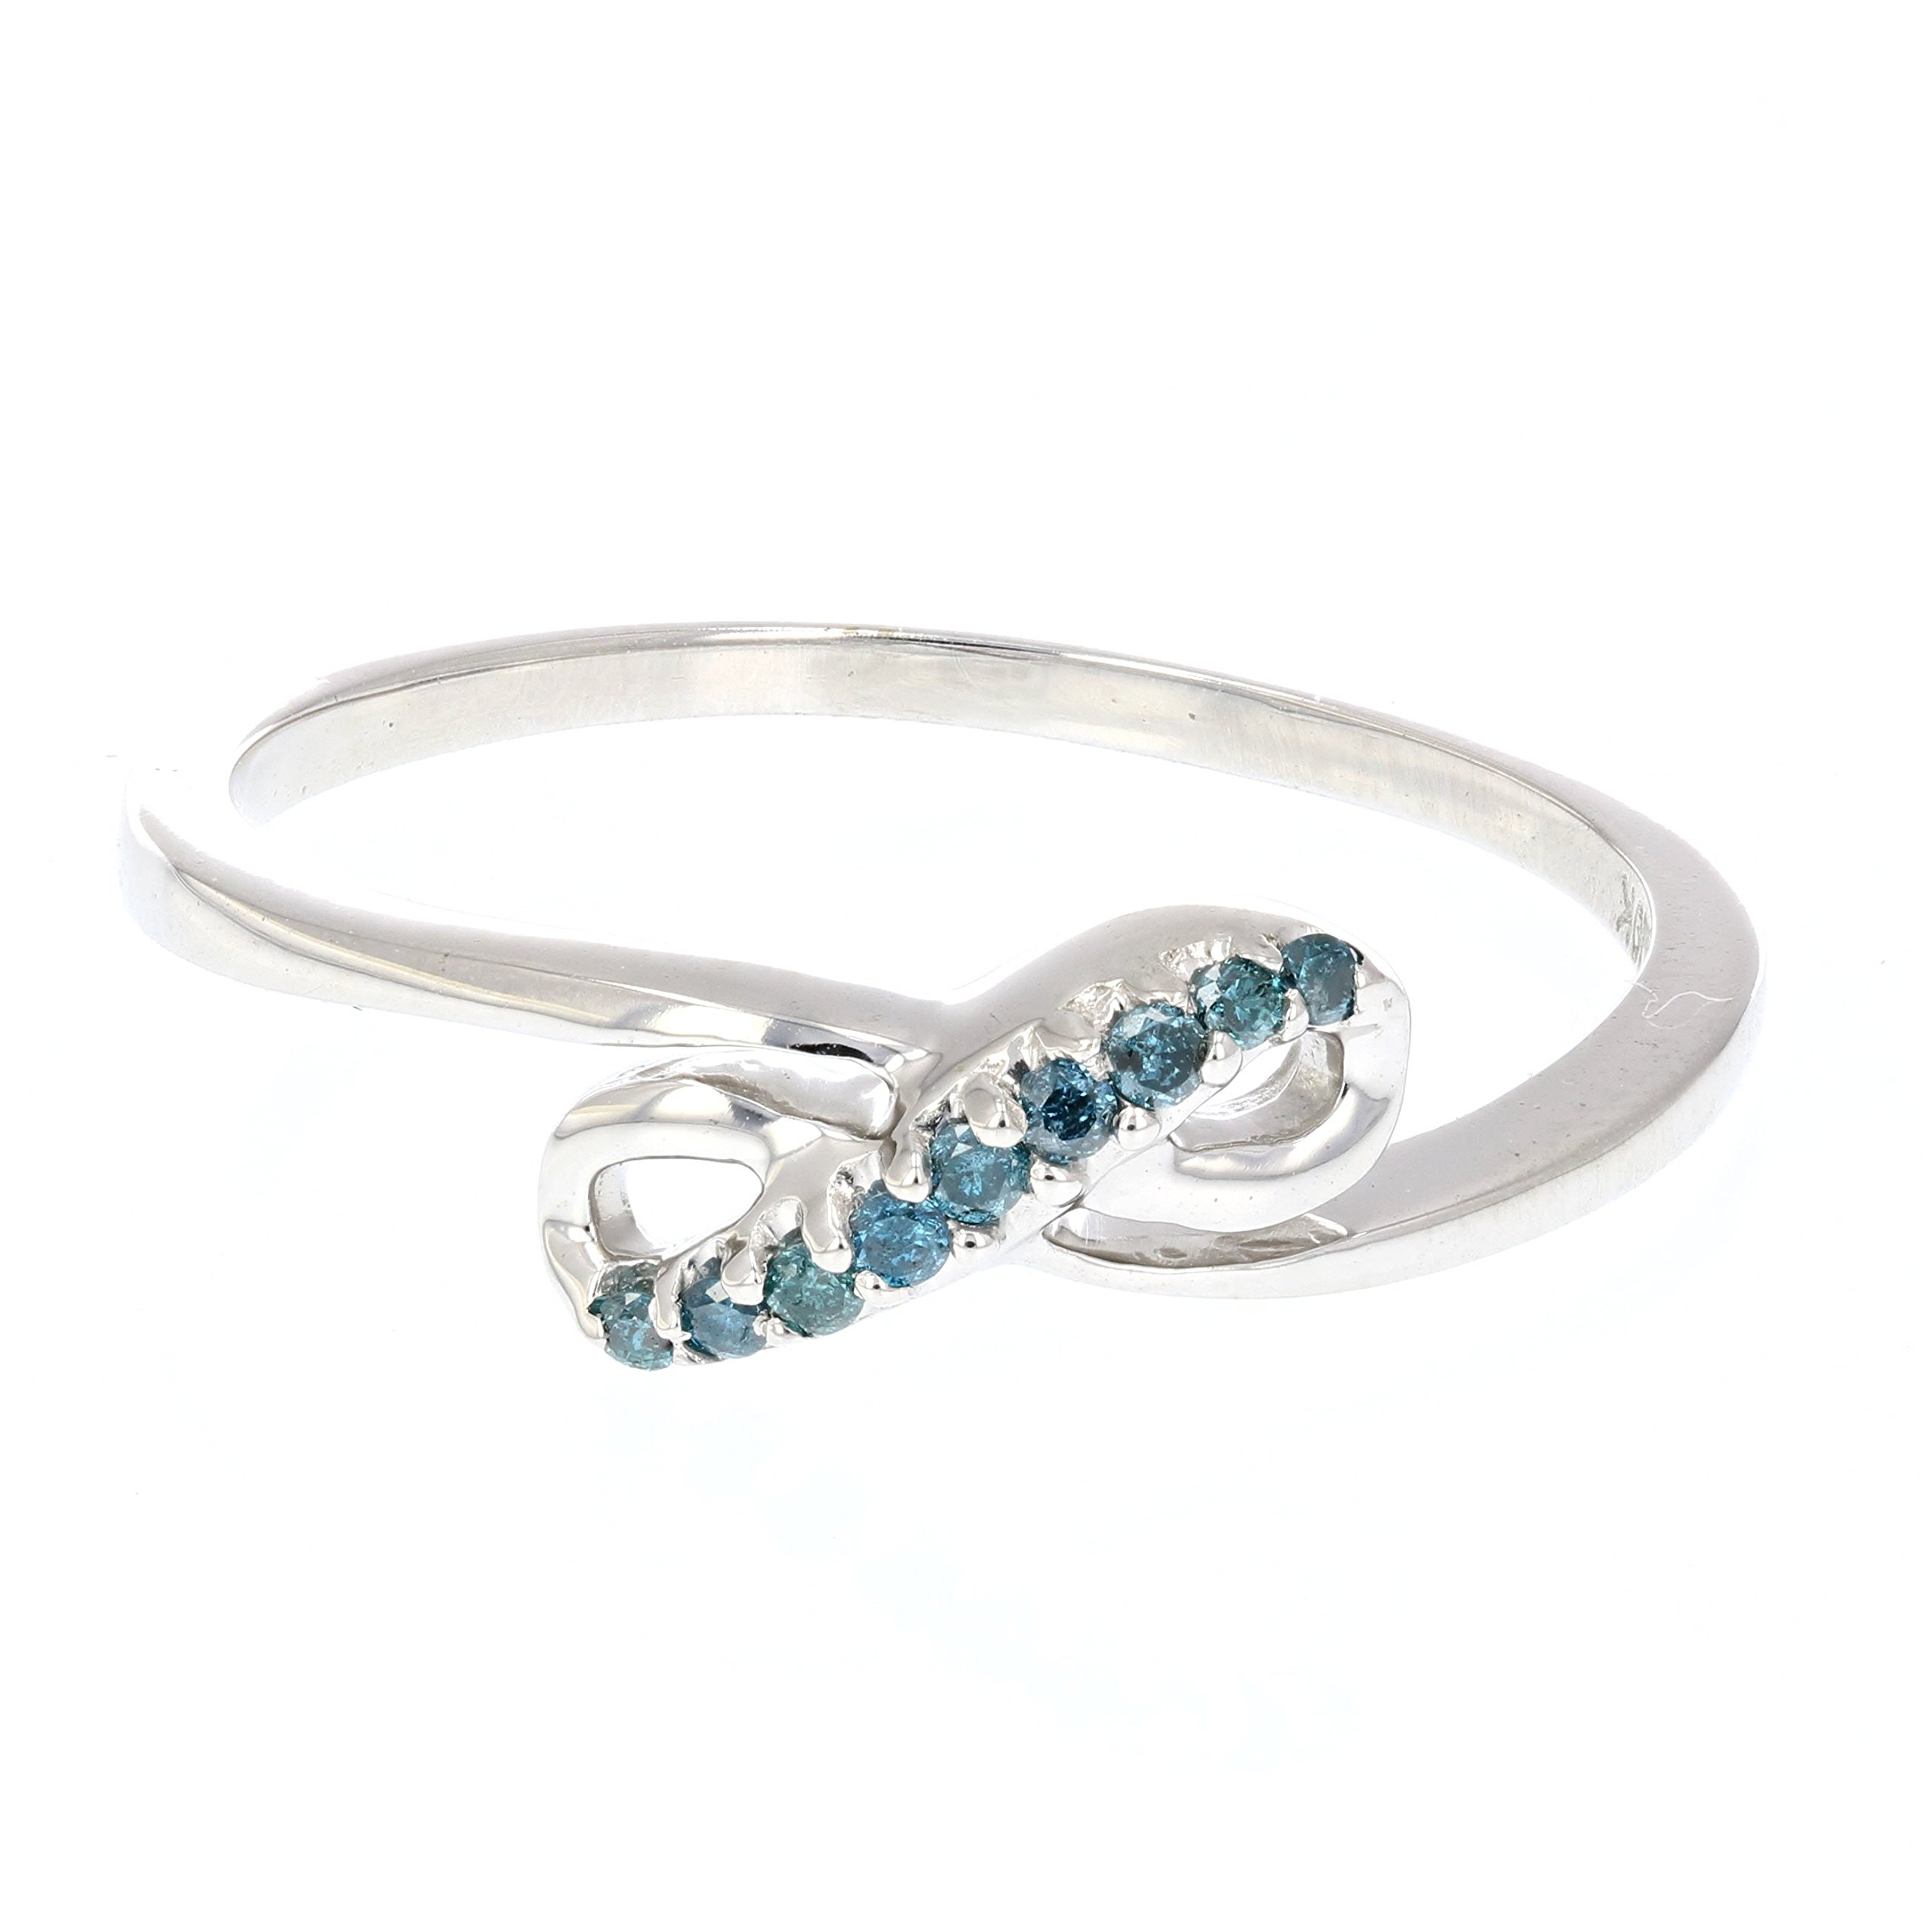 0.07 CT Blue Diamond Ring 10K White Gold Size 7